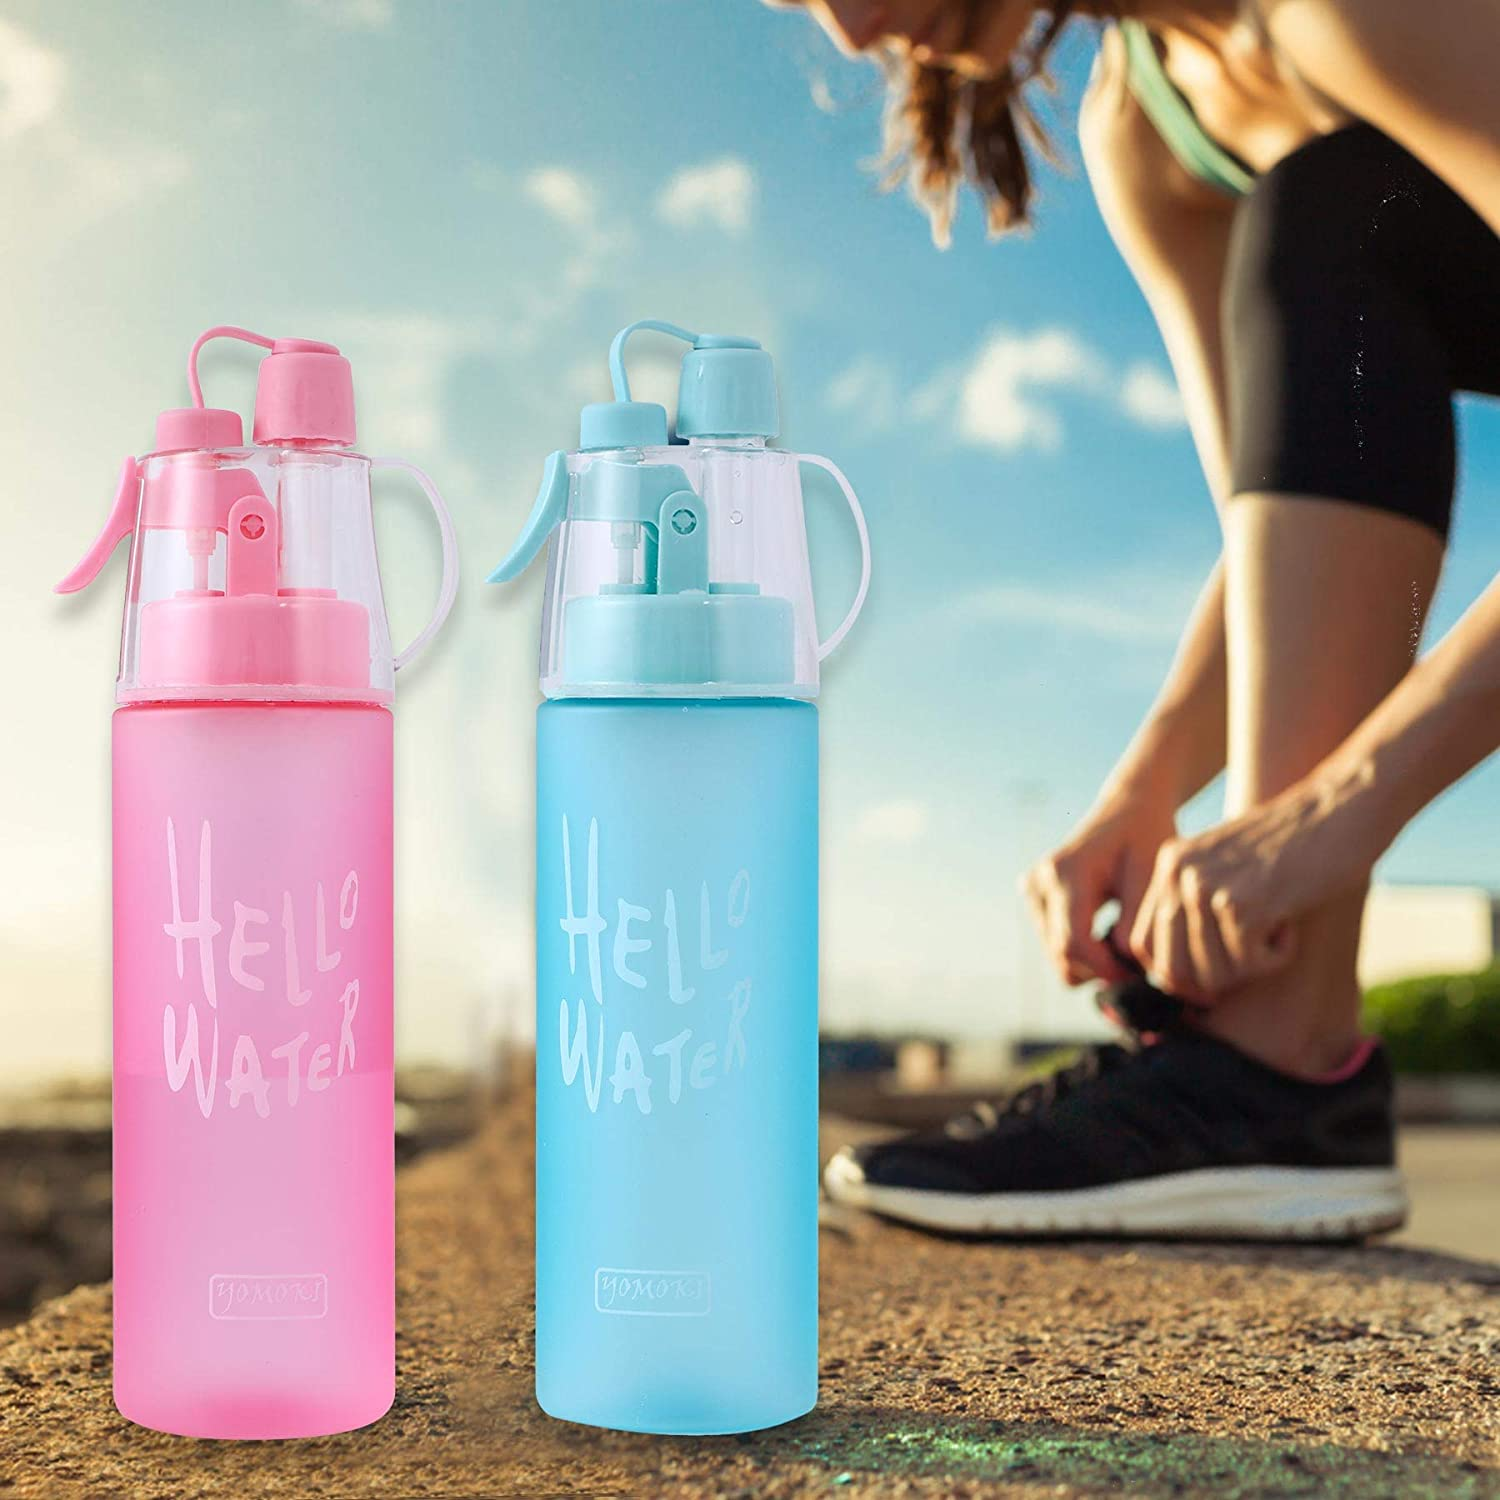 YOMOKI Sport Misting Water Bottle Leak Proof Portable Bottle Drinking and Spraying Misting Bottle for Cooling and Hydration-19.6 Oz